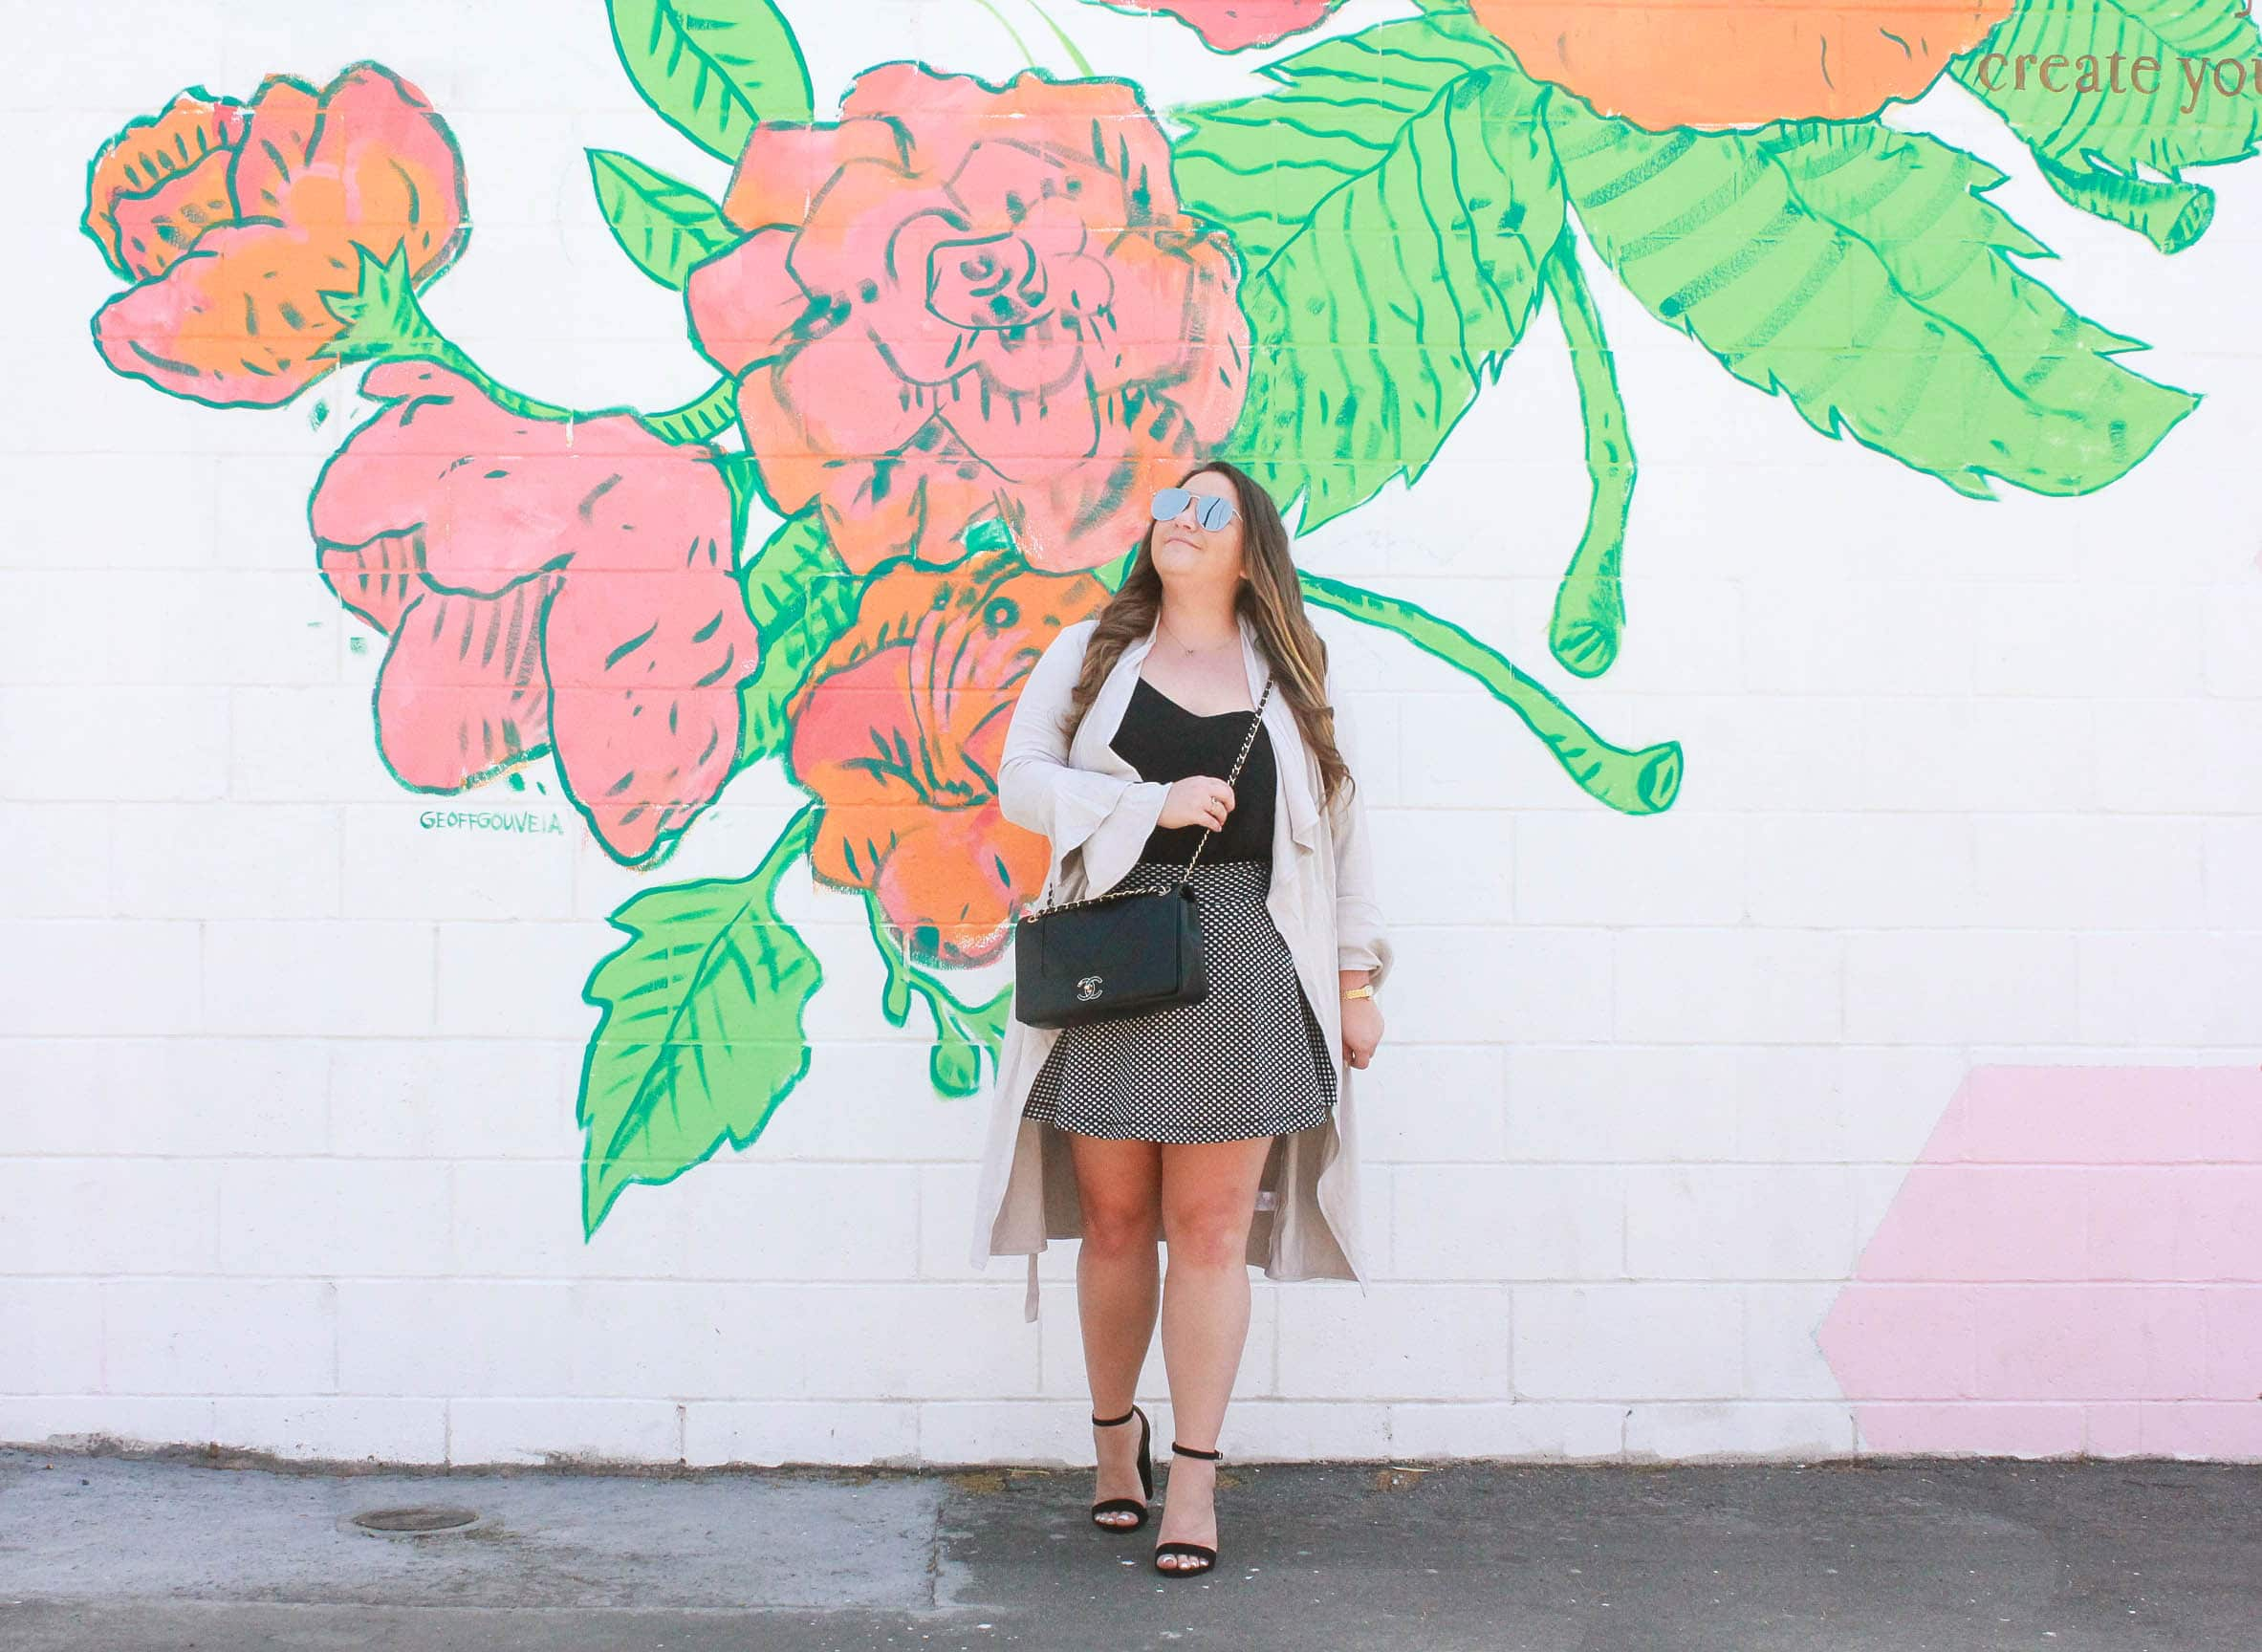 missyonmadison, missyonmadison blog, missyonmadison instagram, fashion blog, fashion blogger, style blog, styleblogger, style blogger, fashion blog, fashion blogger, la blogger, gray duster cardigan, rose wall, studio diy wall crawl, gray duster, black chiffon camisole, black camisole, black swing camisole, chanel bag, chanel flap bag, black chanel flap bag, polka dot skirt, polka dot skater skirt, polka dot fit and flare skirt, bloglovin, black ankle strap heels, black chunky heels,